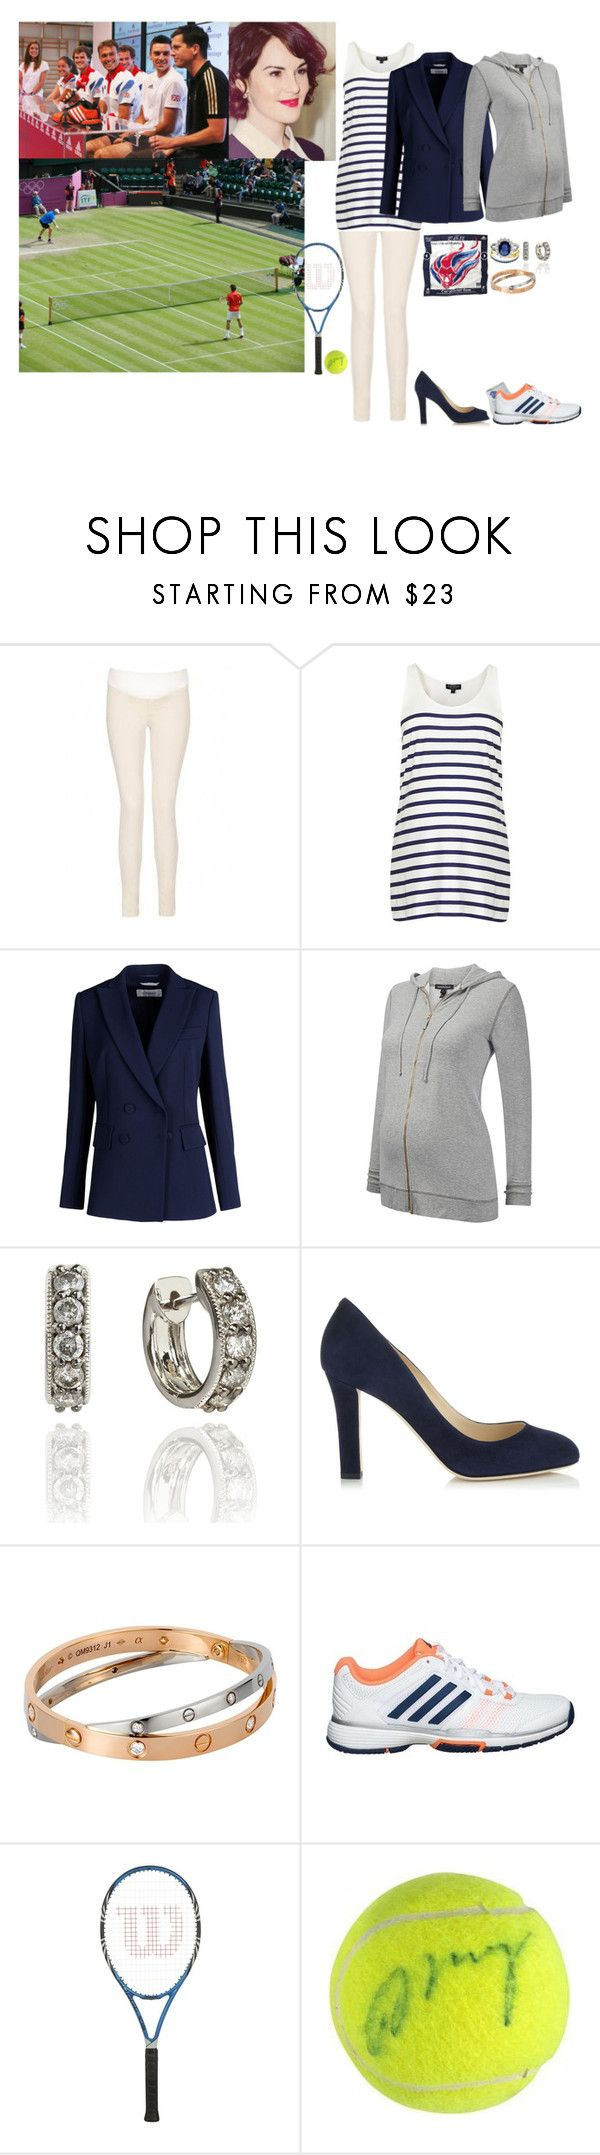 """""""Surprising the Team GB Tennis Players At The London Olympic Park & Participating In Practice + Receiving A Signed Tennis Ball From Andrew Murray"""" by madeleine-duchessofcam ❤ liked on Polyvore featuring J Brand, Topshop, Sportmax, adidas, Jimmy Choo and Cartier"""